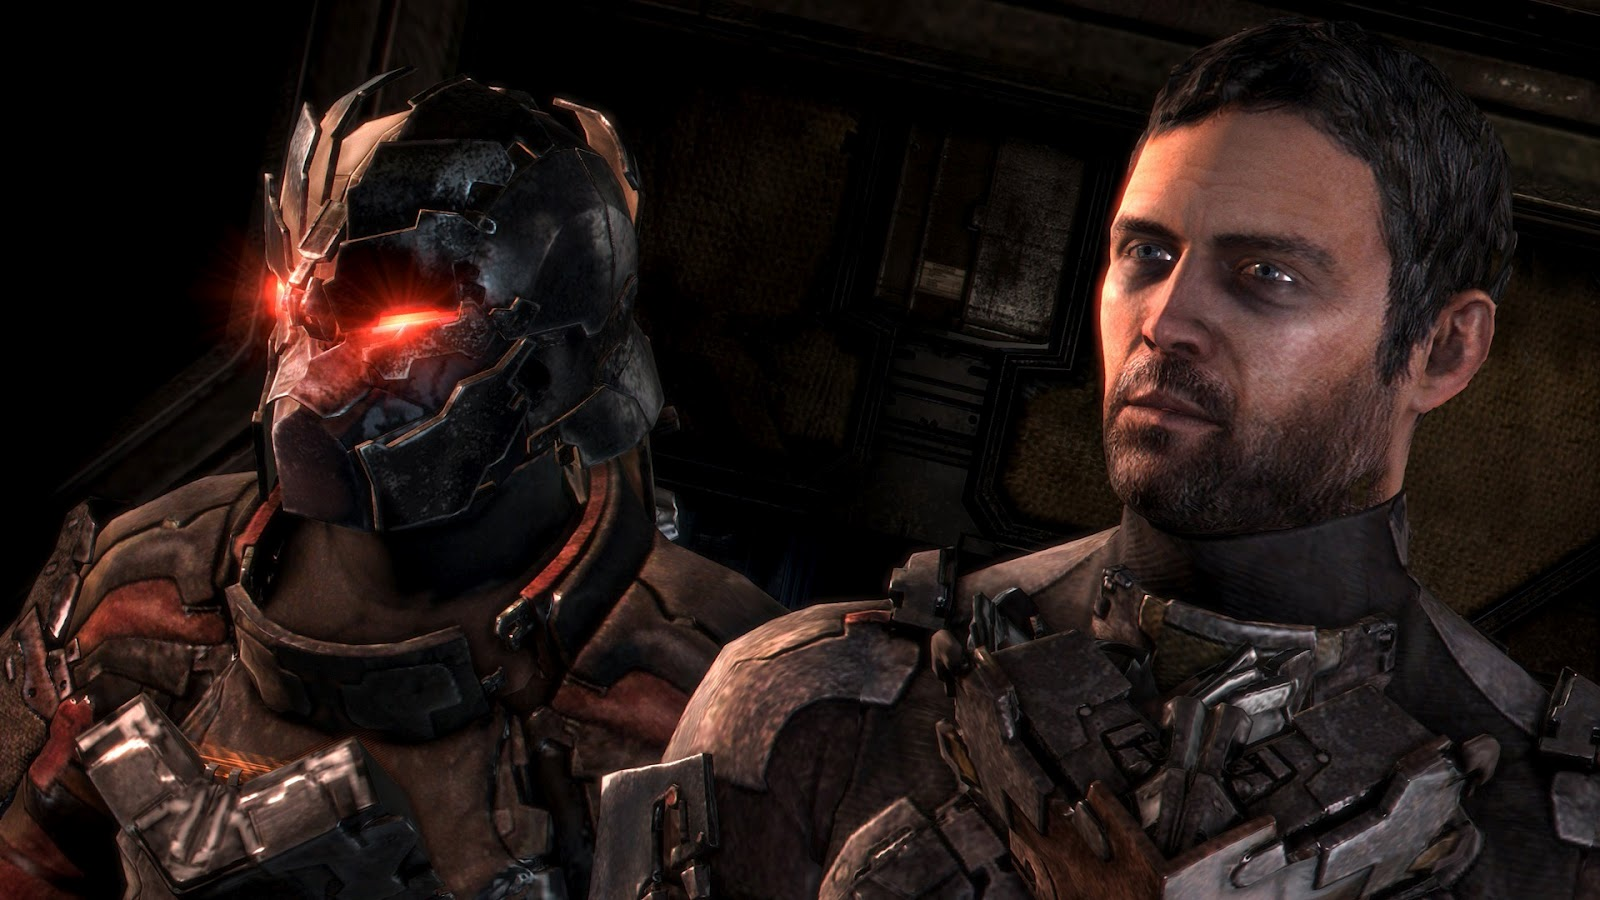 Wallpaper 1080p wallpapers of space - Dead space 3 wallpaper 1080p ...